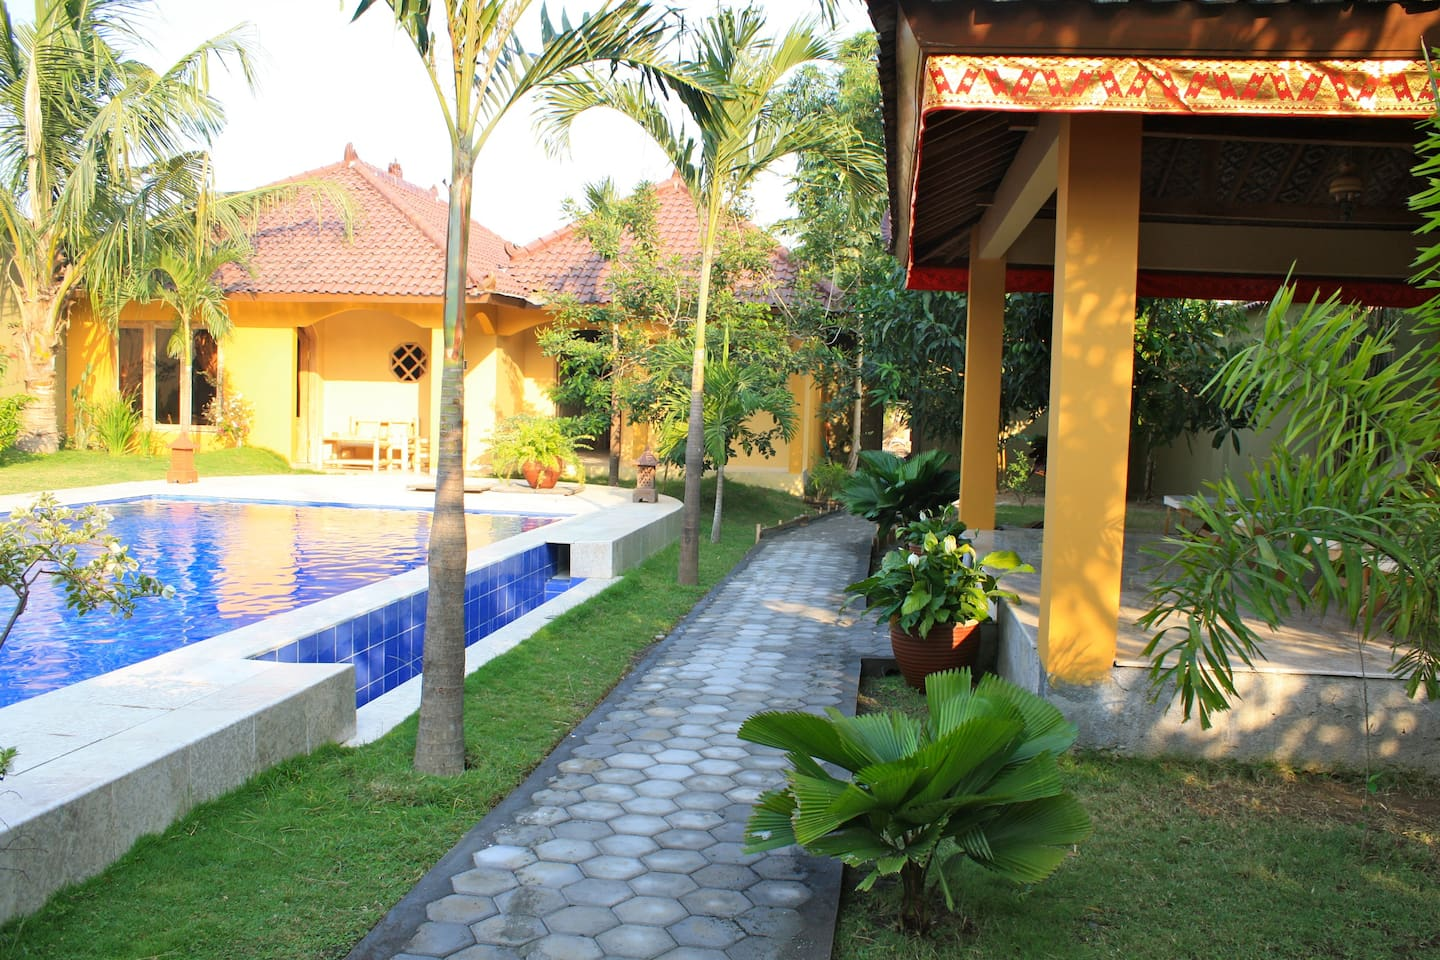 view from the terraceof your room, overlooking swimming pool,tropicalgarden, and gazebo.